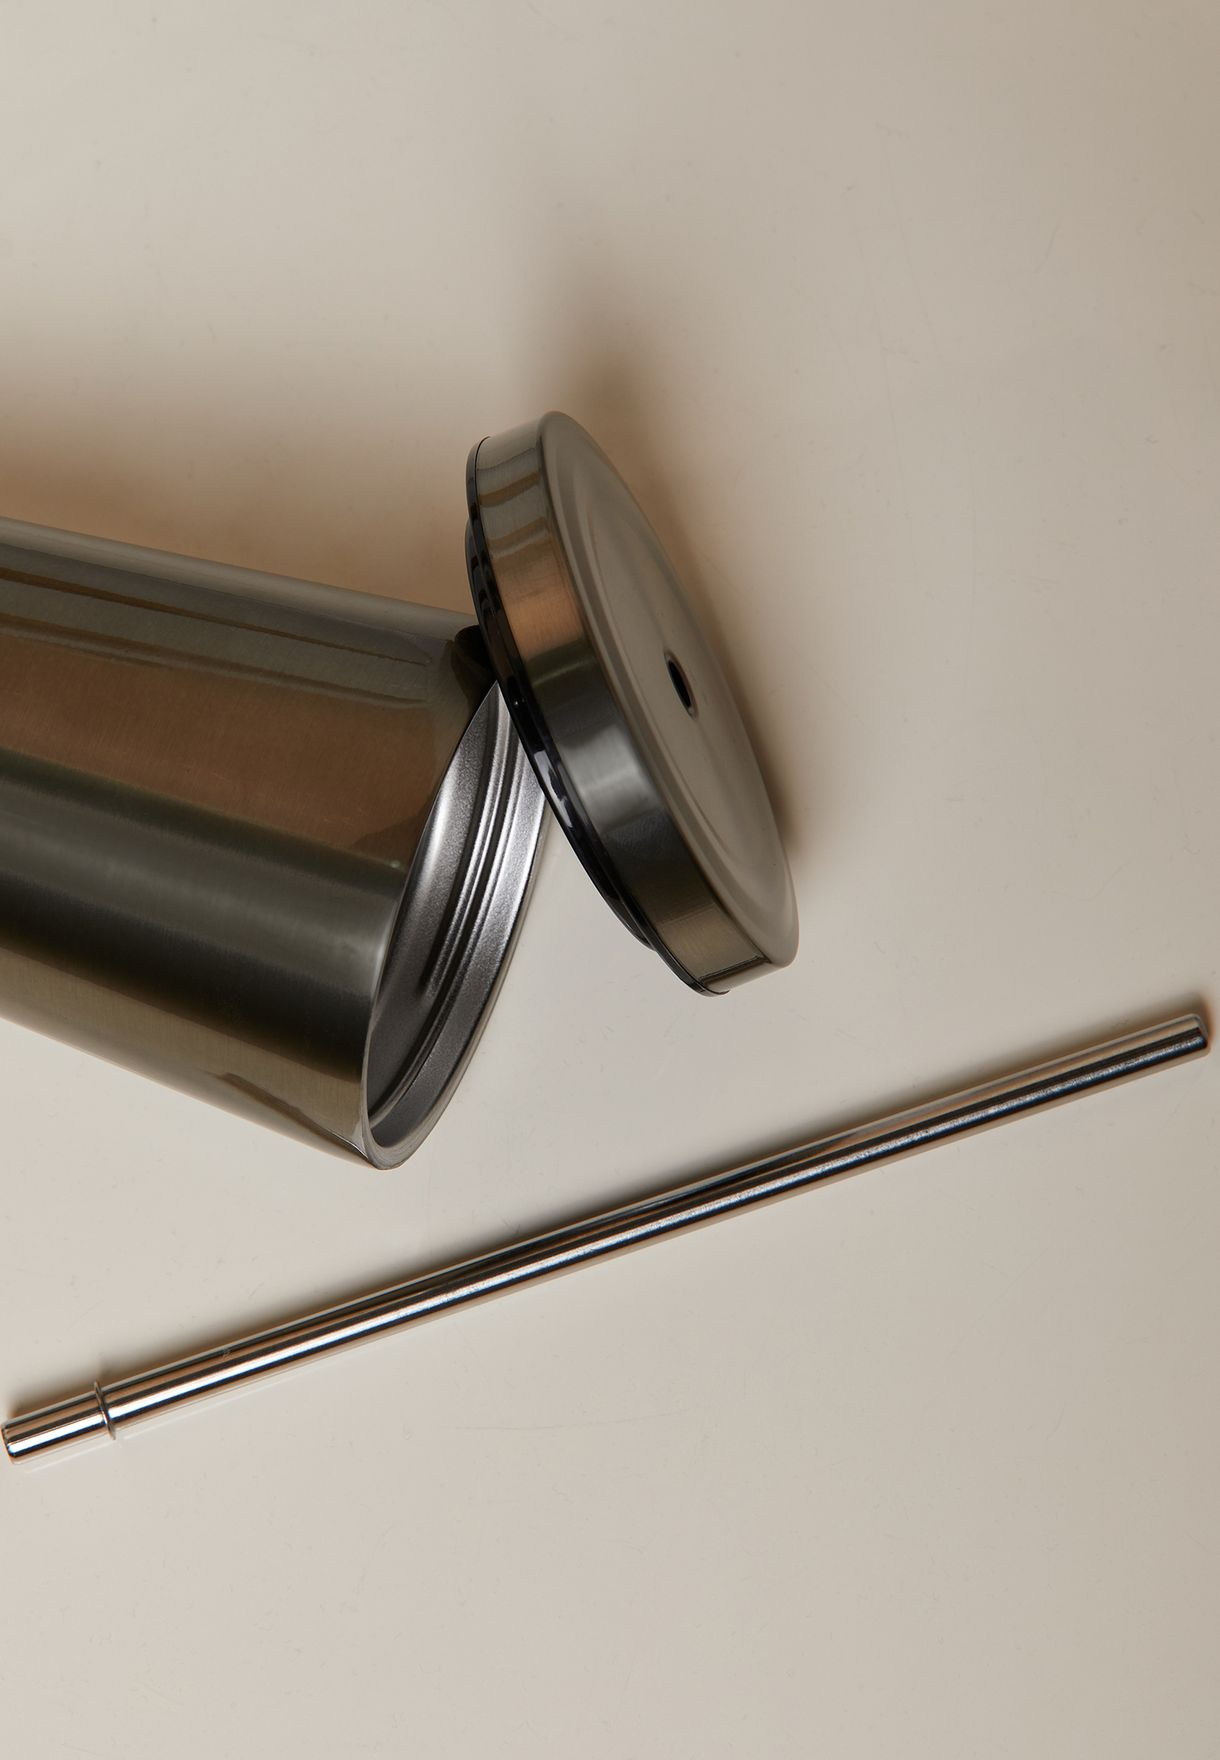 Stainless Steel Tumbler With Straw